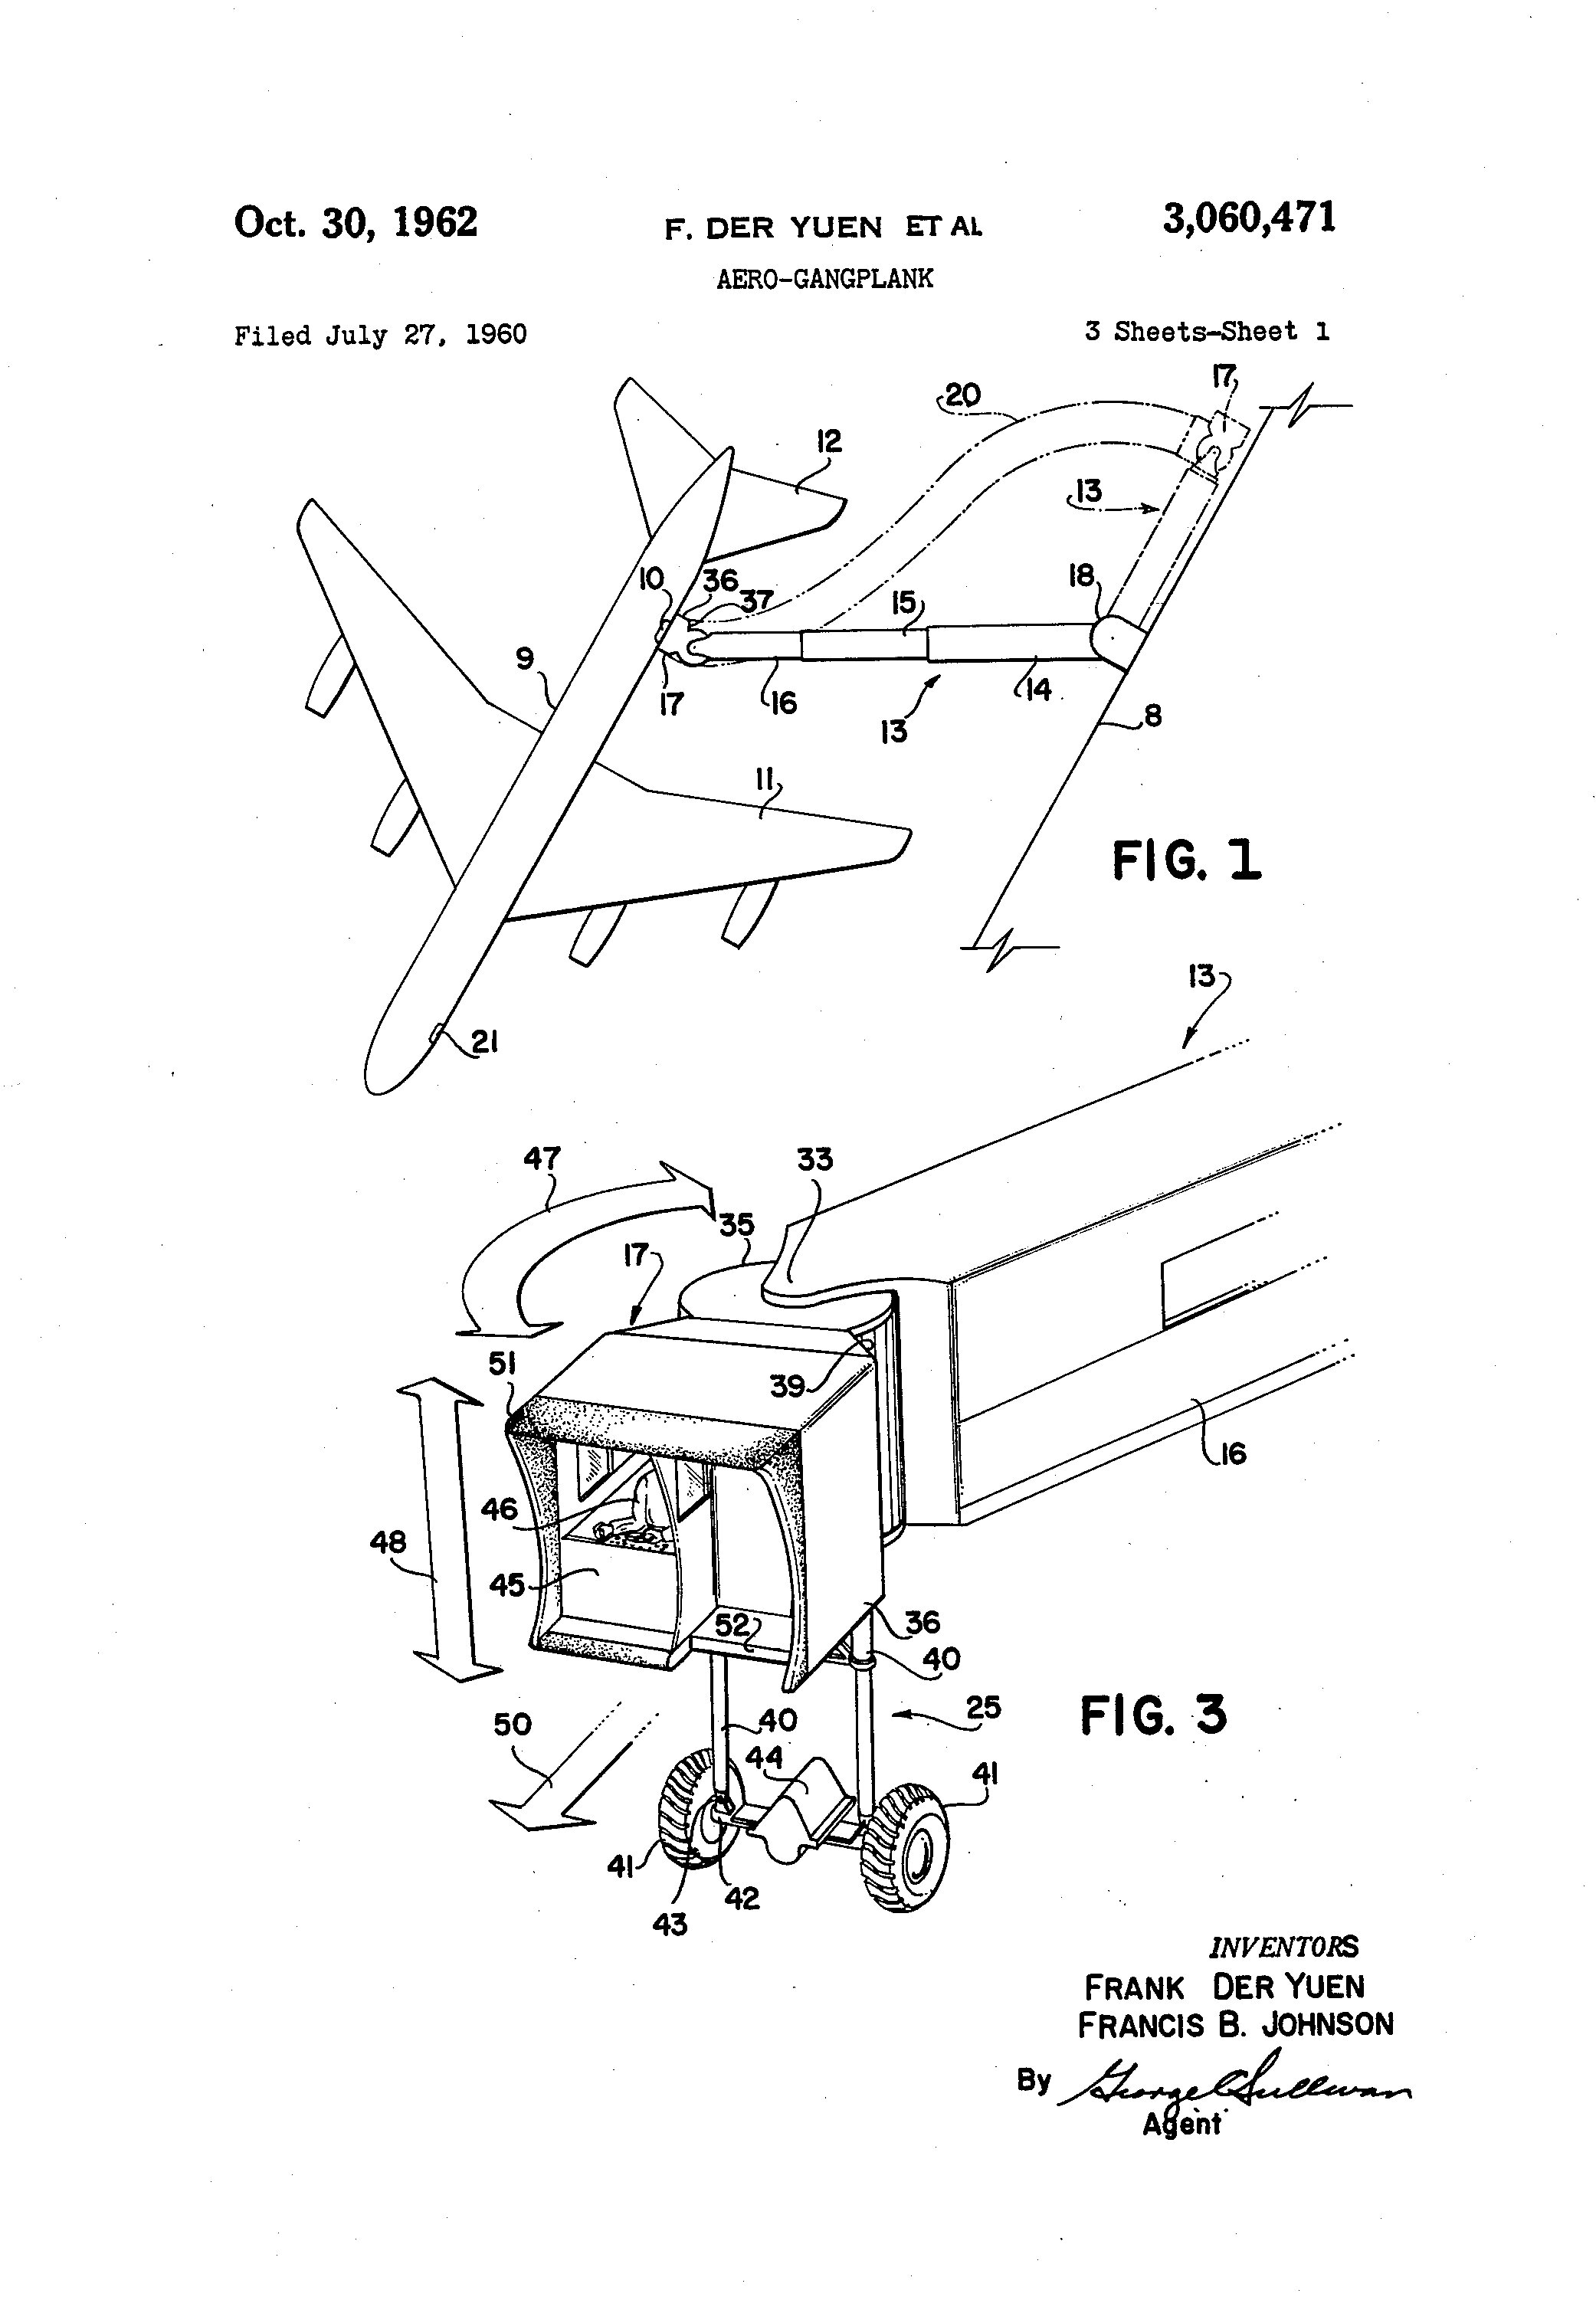 Frank Der Yuen and Francis B. Johnson, assignors to Lockheed Aircraft Corporation. Aero-Gangplank. U.S. patent #3,060,471, filed July 27, 1960; issued October 30, 1962.